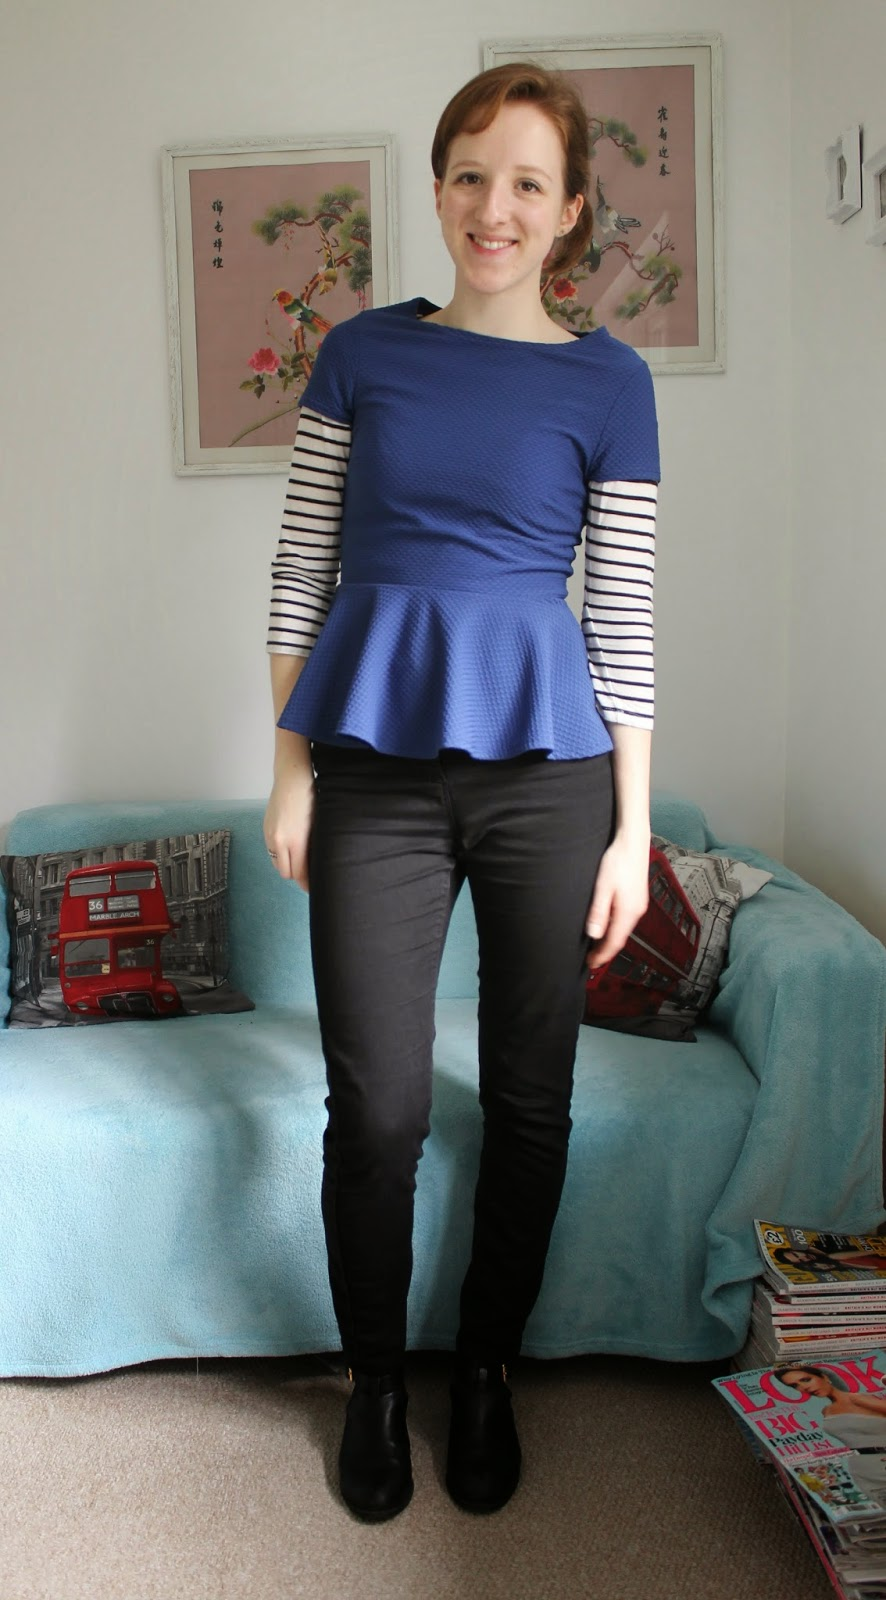 OOTD: A Peplum Top and Stripes